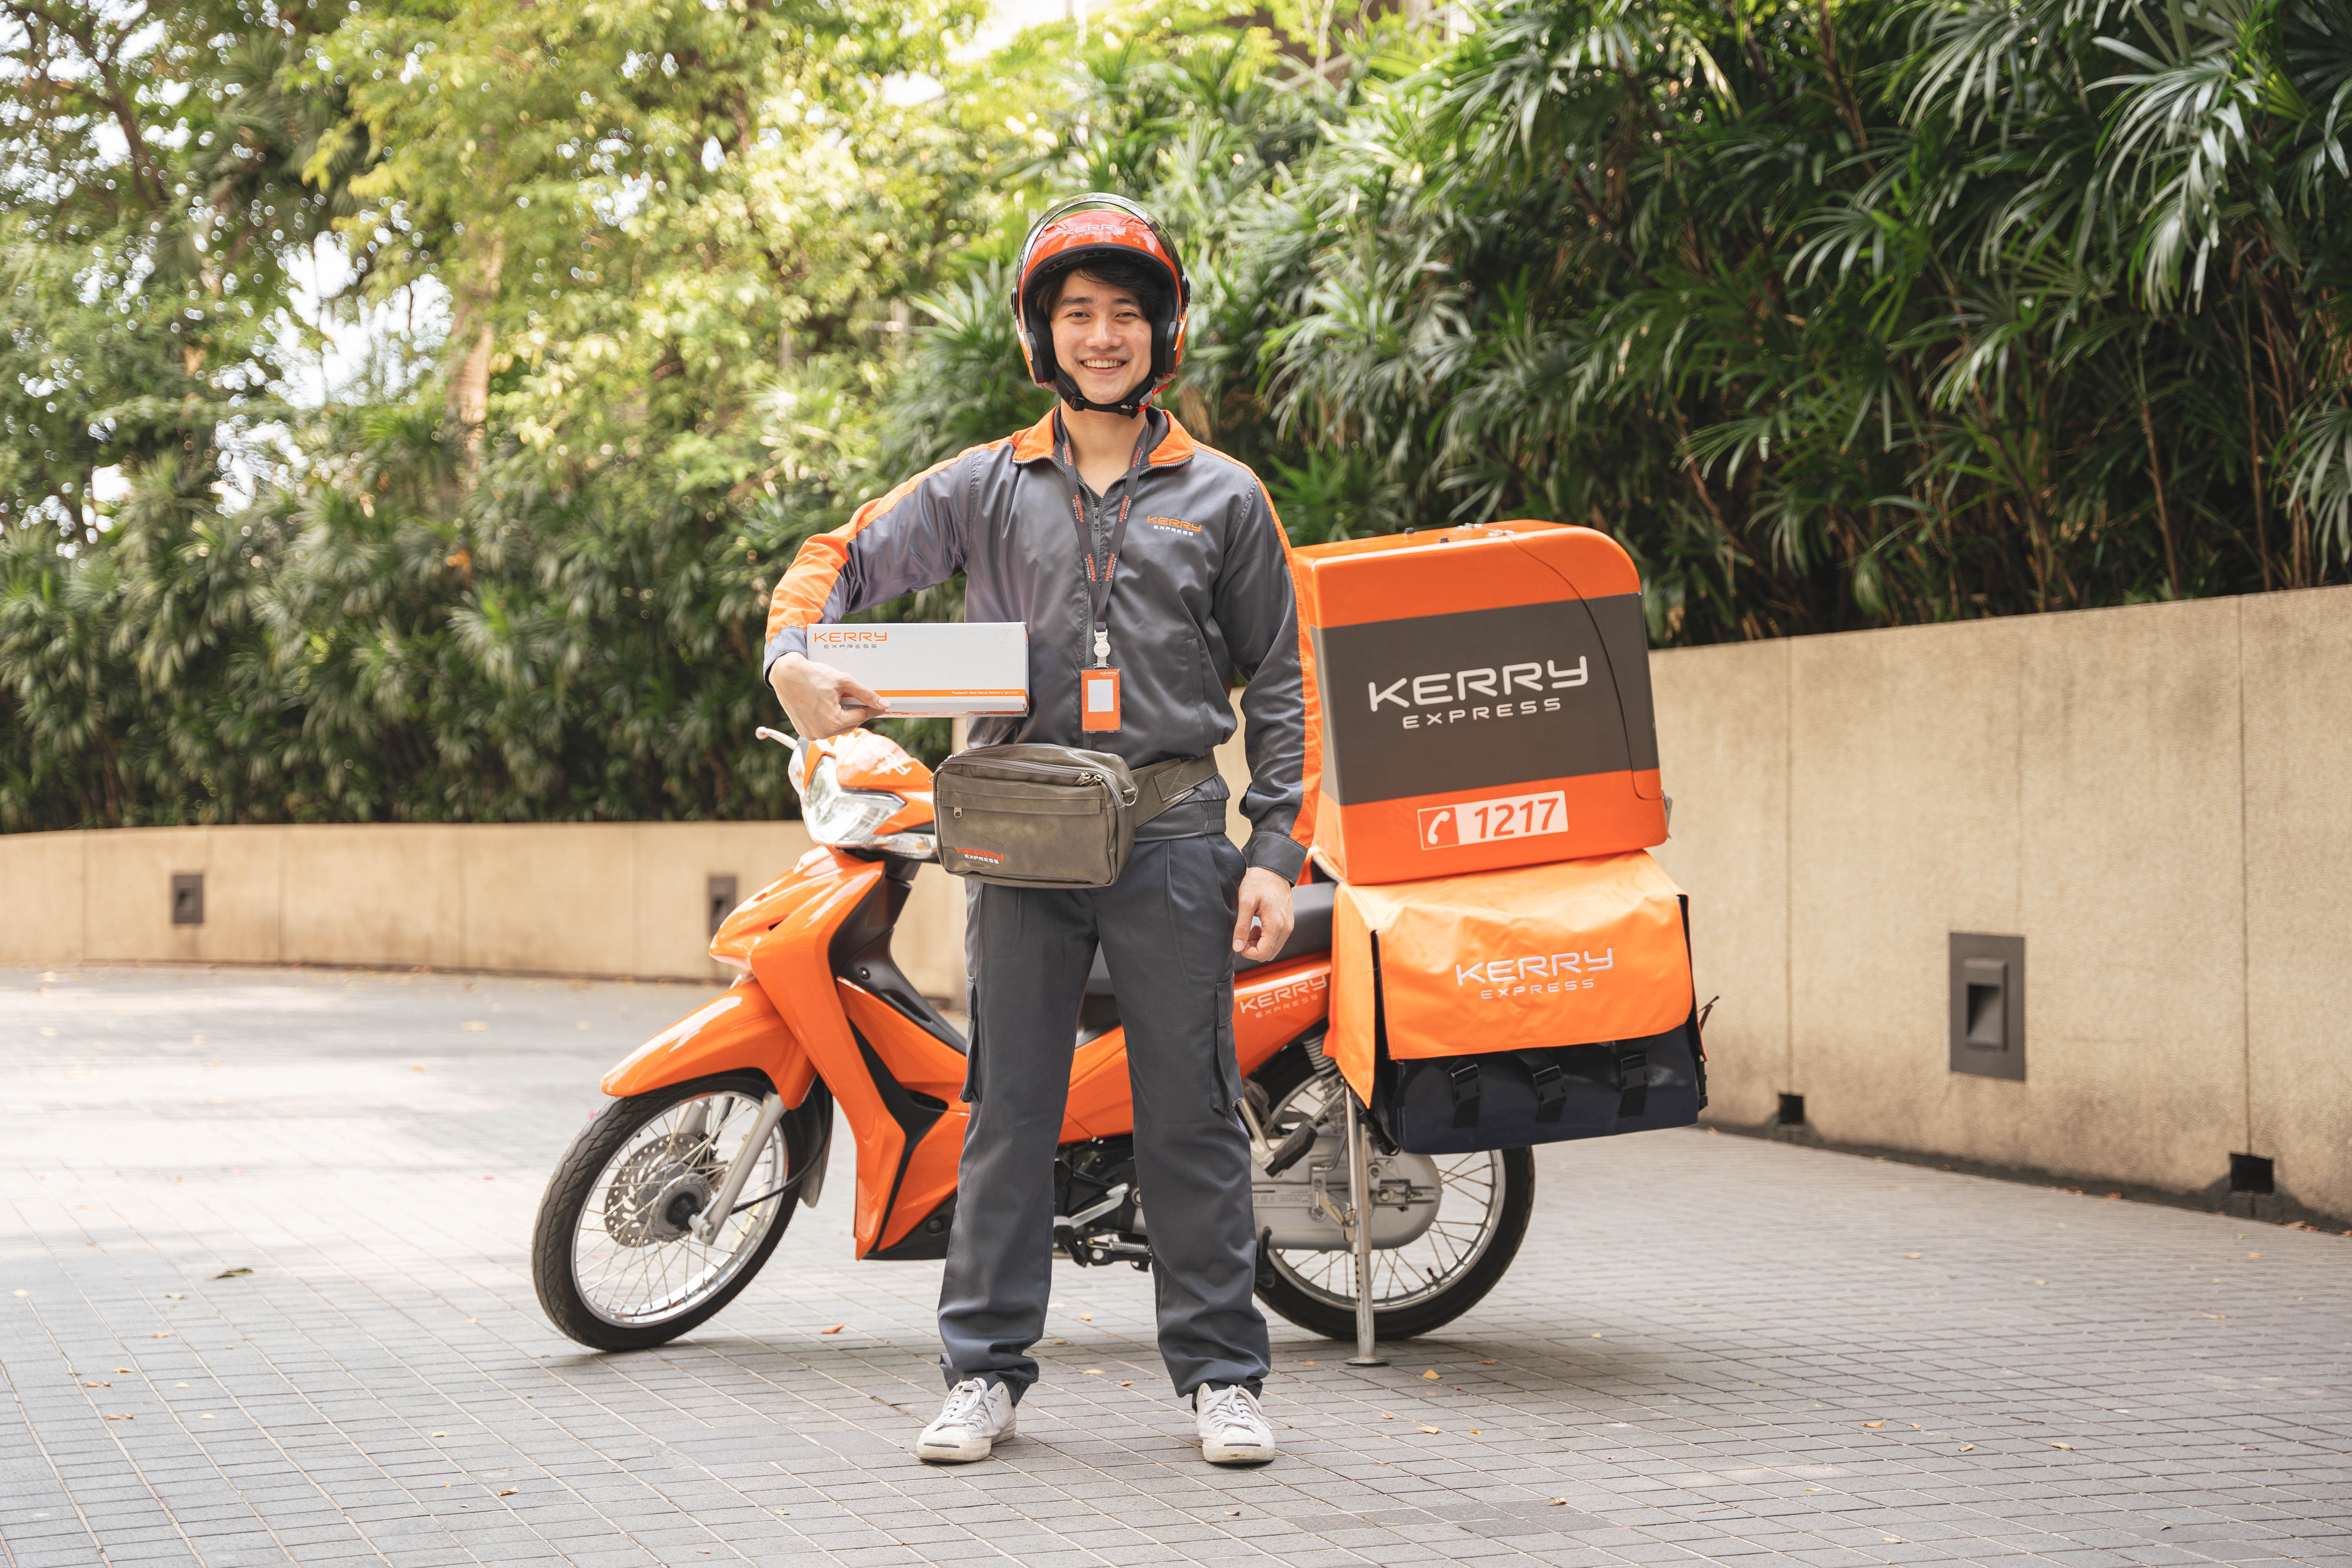 services:cash-on-delivery.detail-1.title